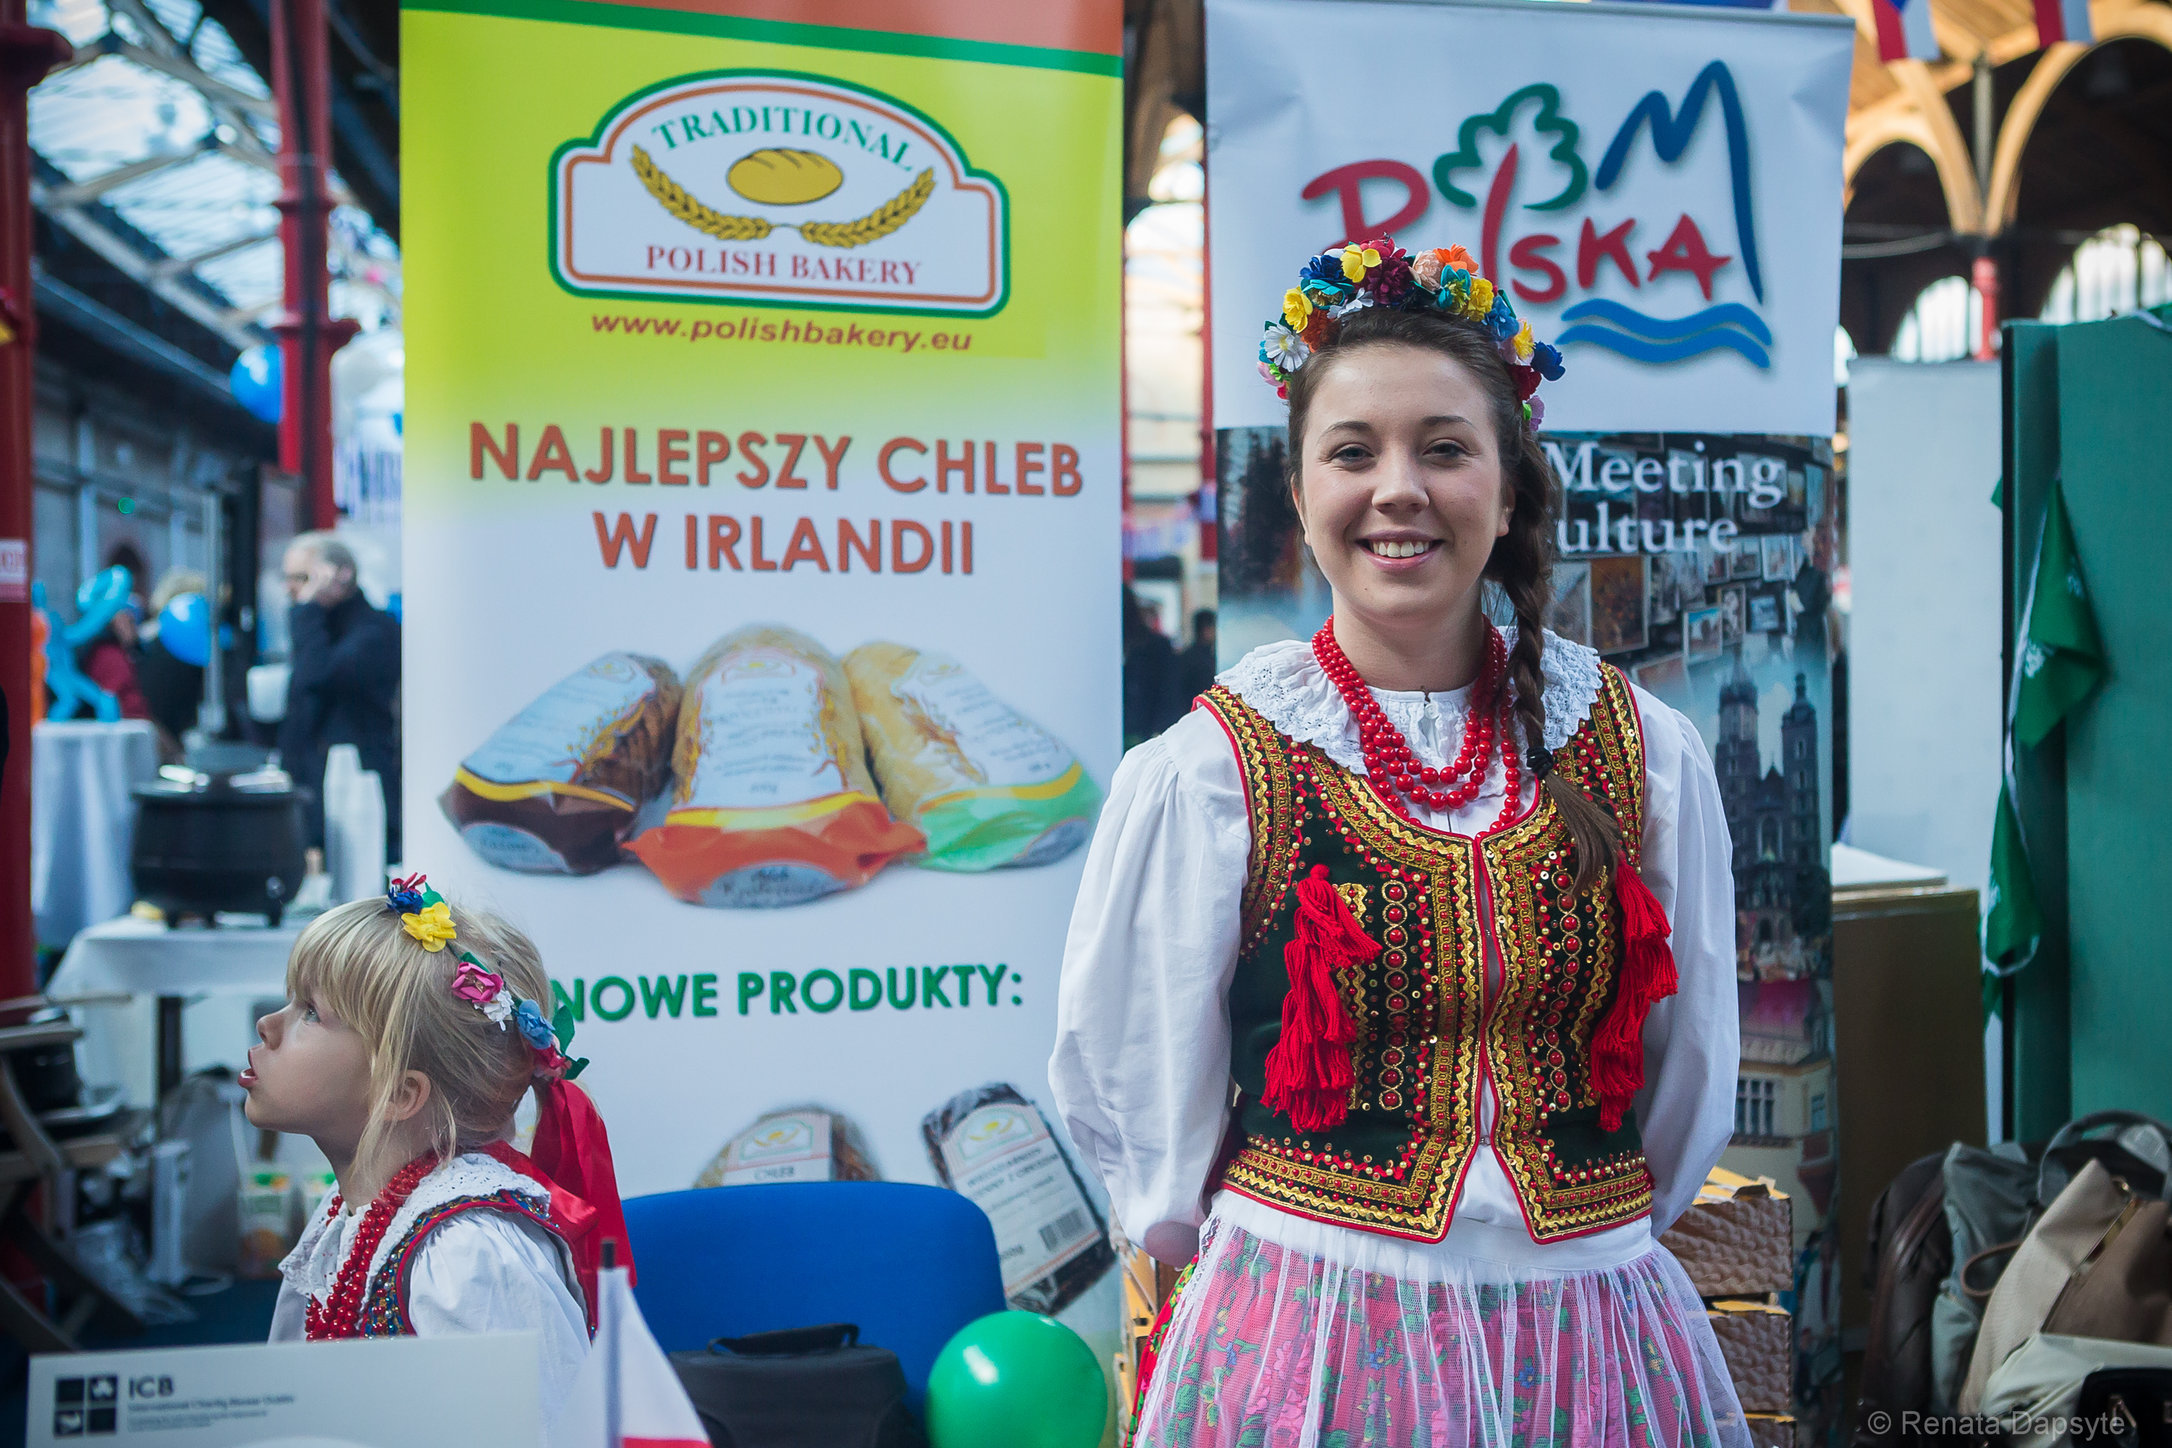 038_International Charity Bazaar Dublin 2013.JPG